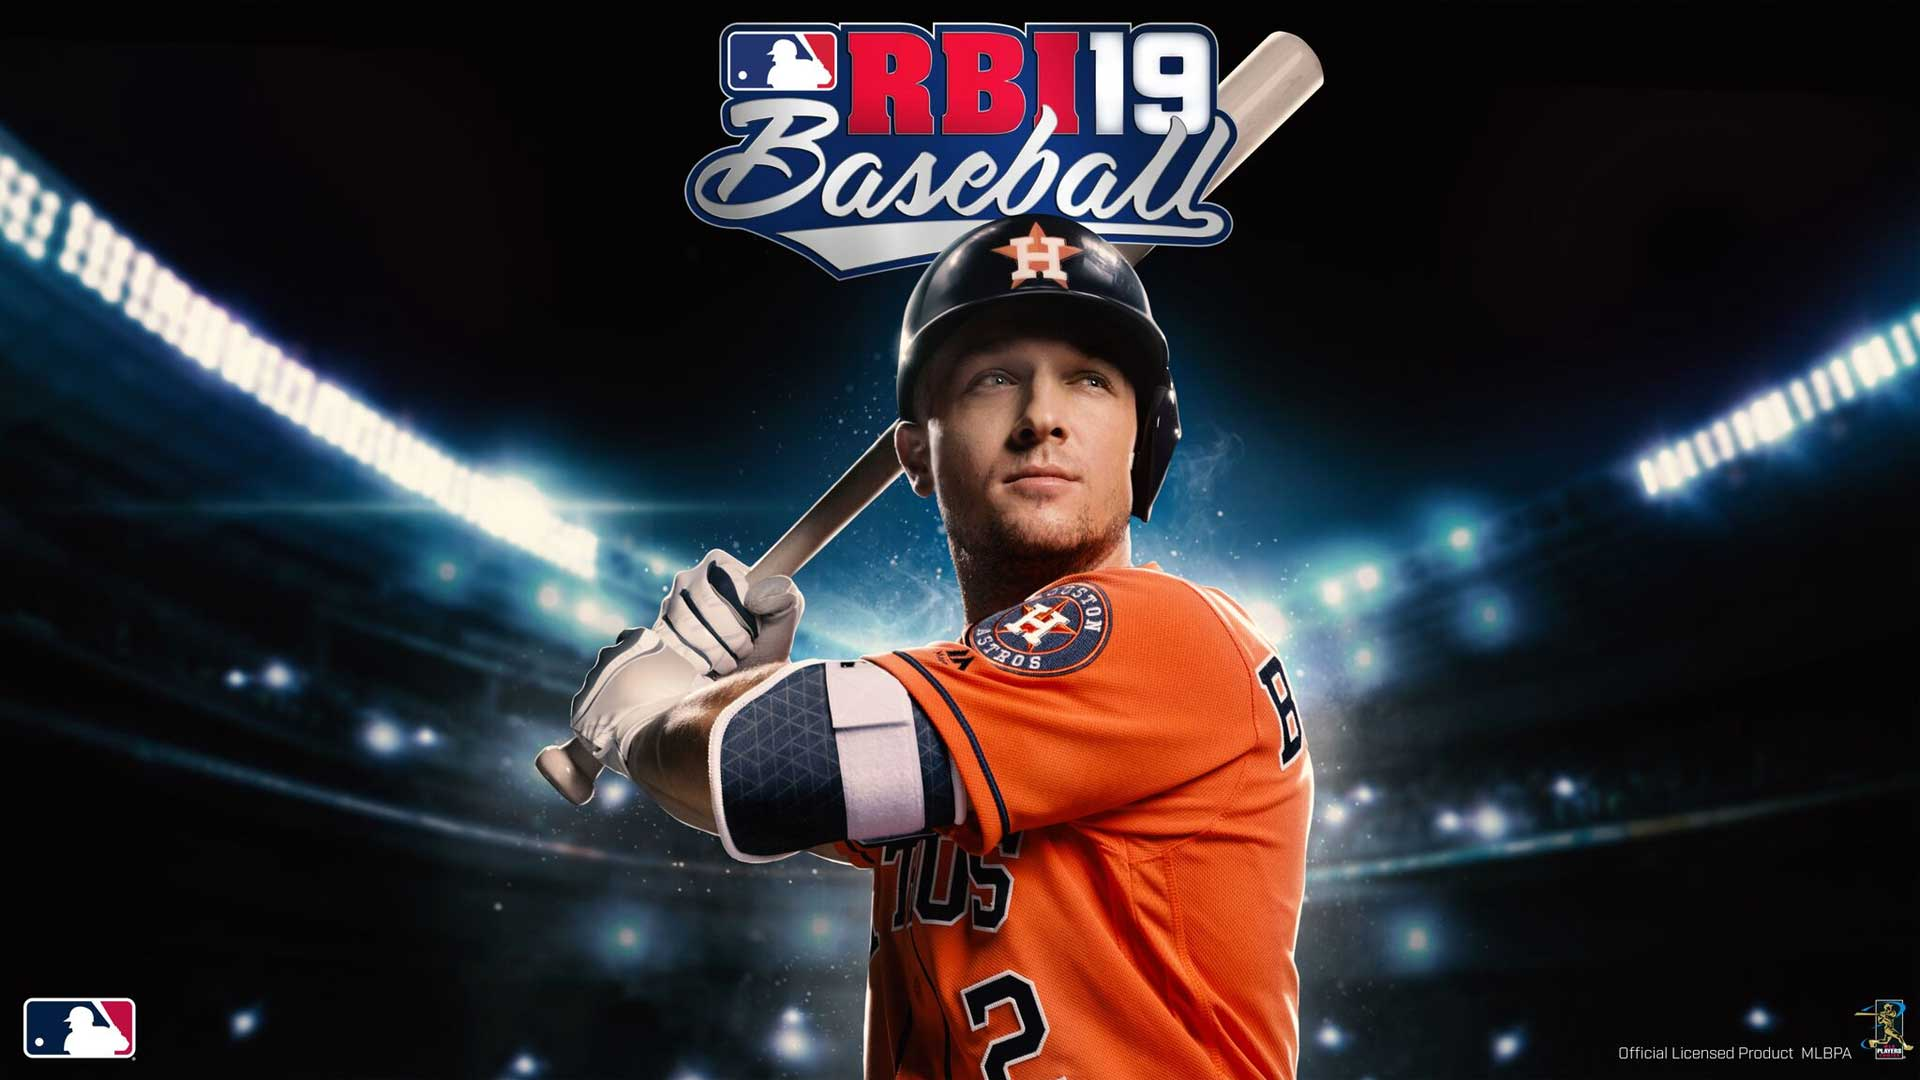 RBI Baseball 19 cover athlete